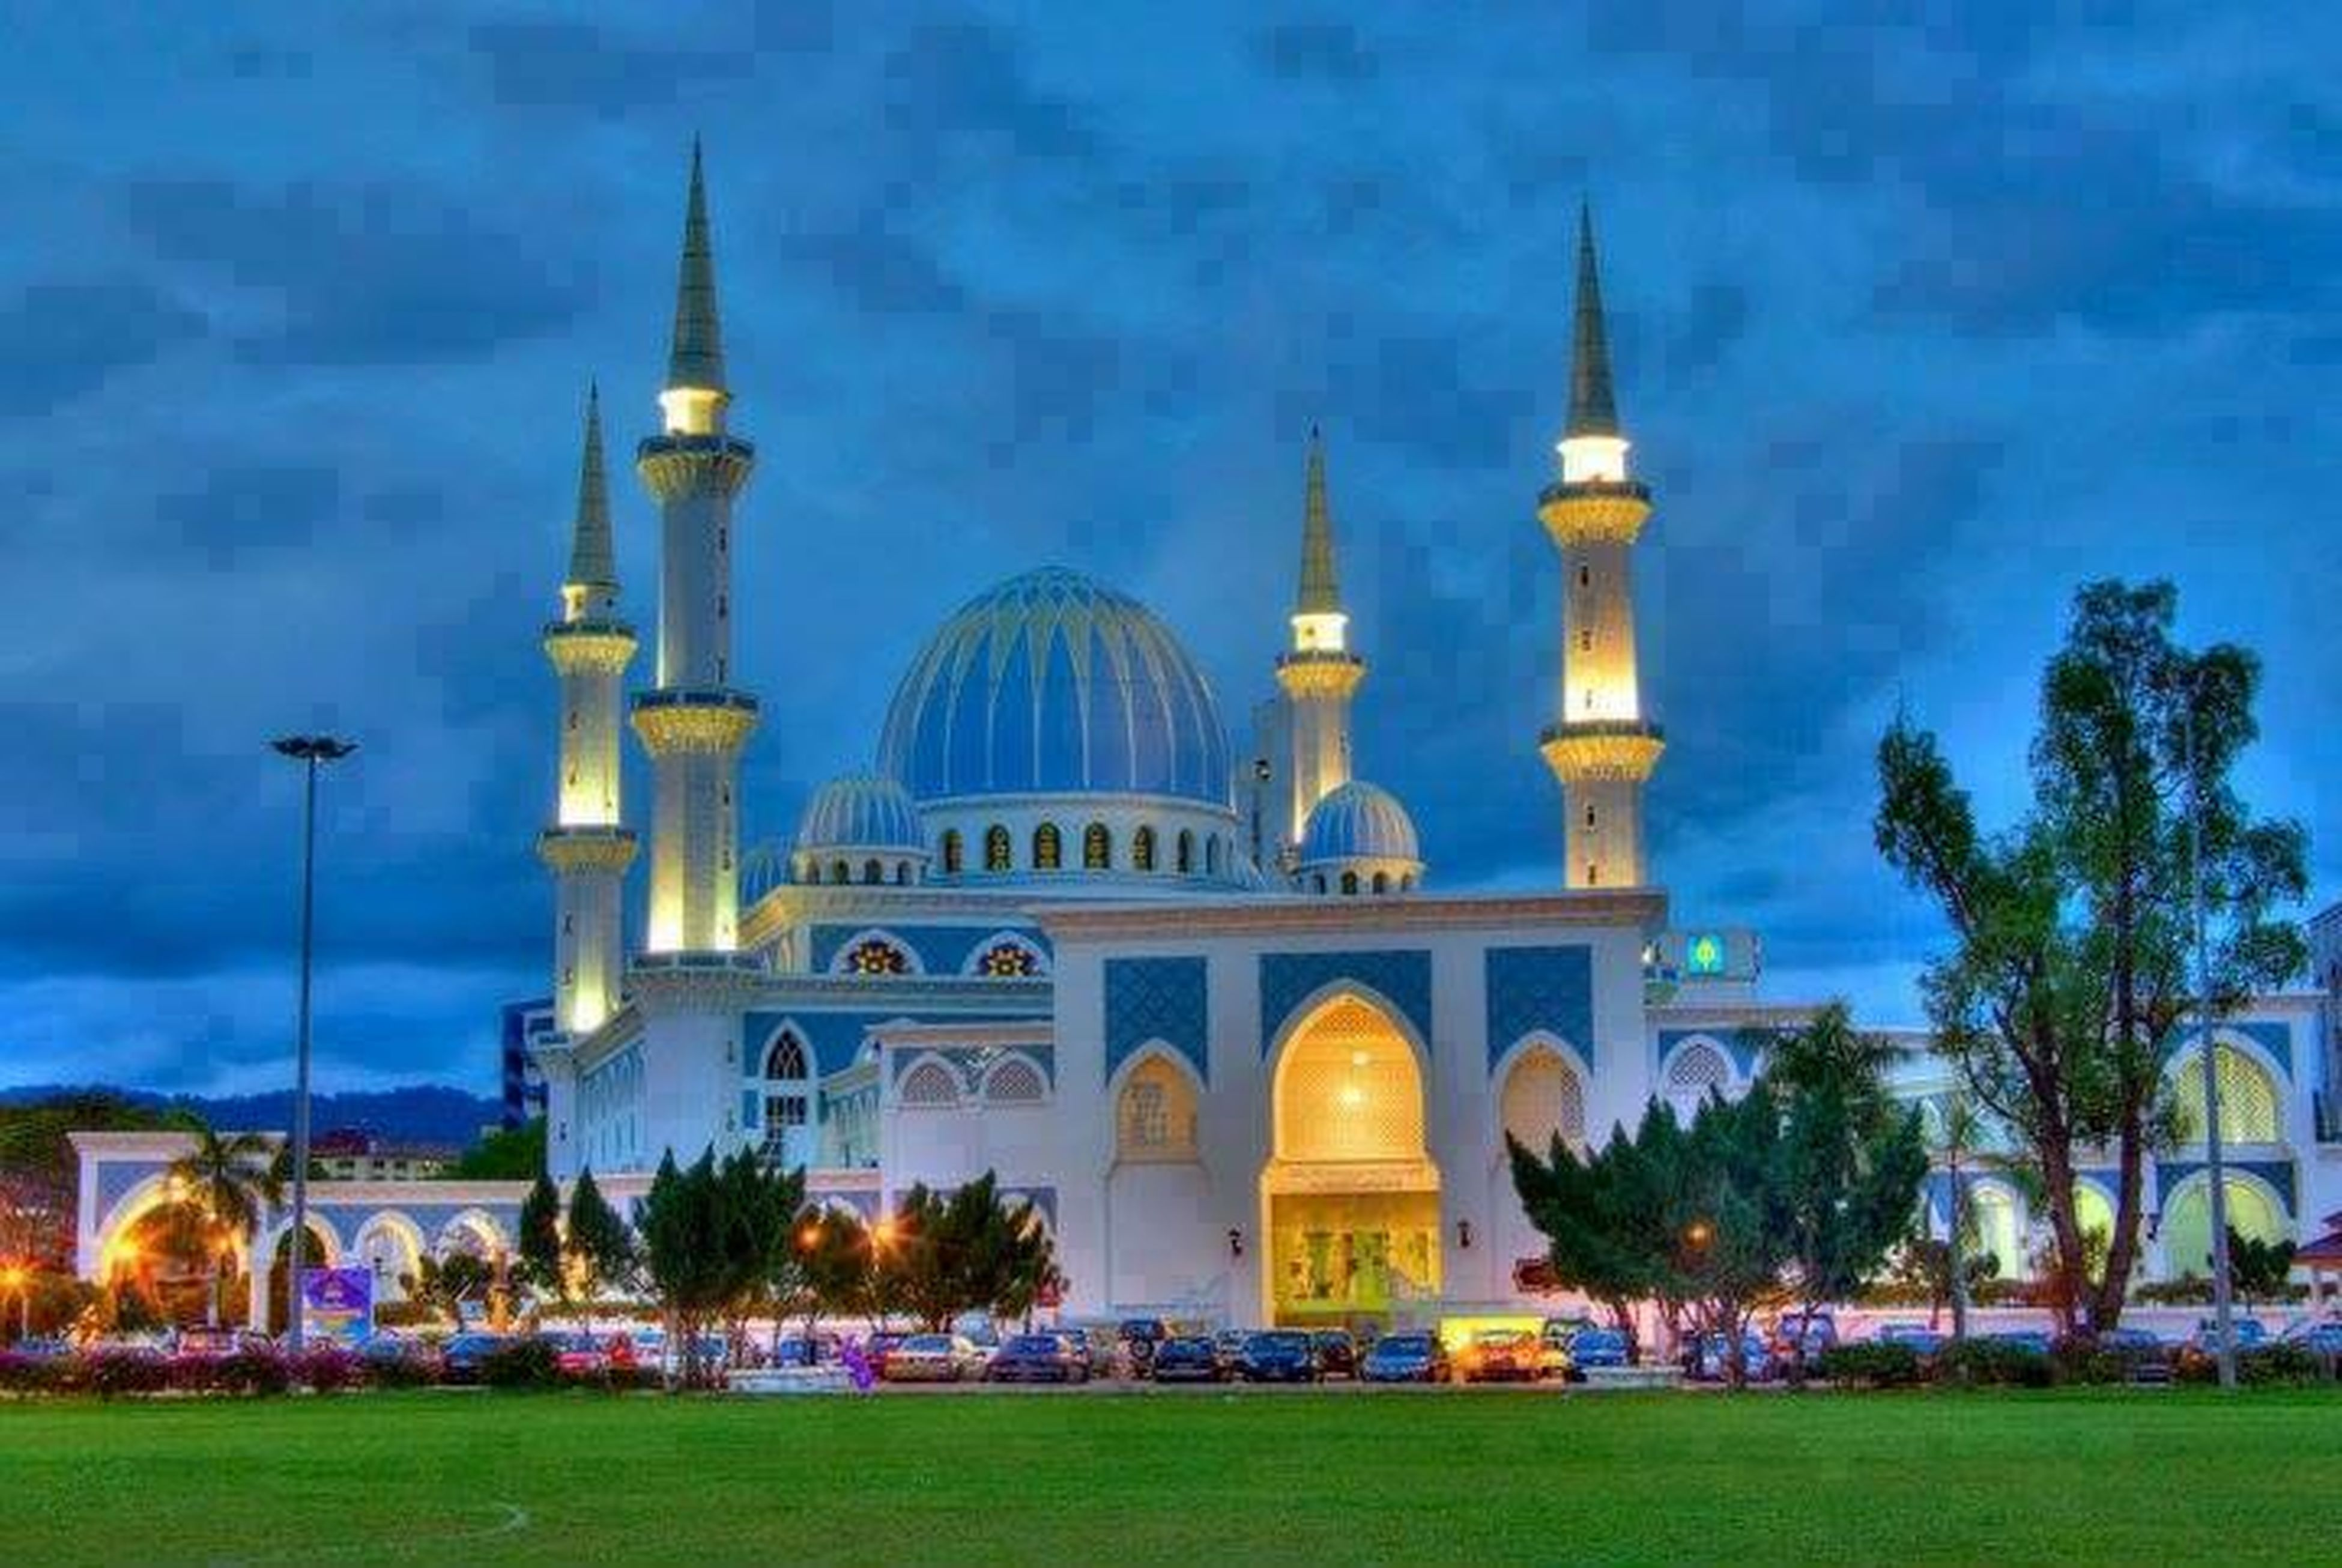 architecture, built structure, building exterior, dome, place of worship, religion, church, spirituality, grass, sky, mosque, islam, travel destinations, blue, tree, famous place, tourism